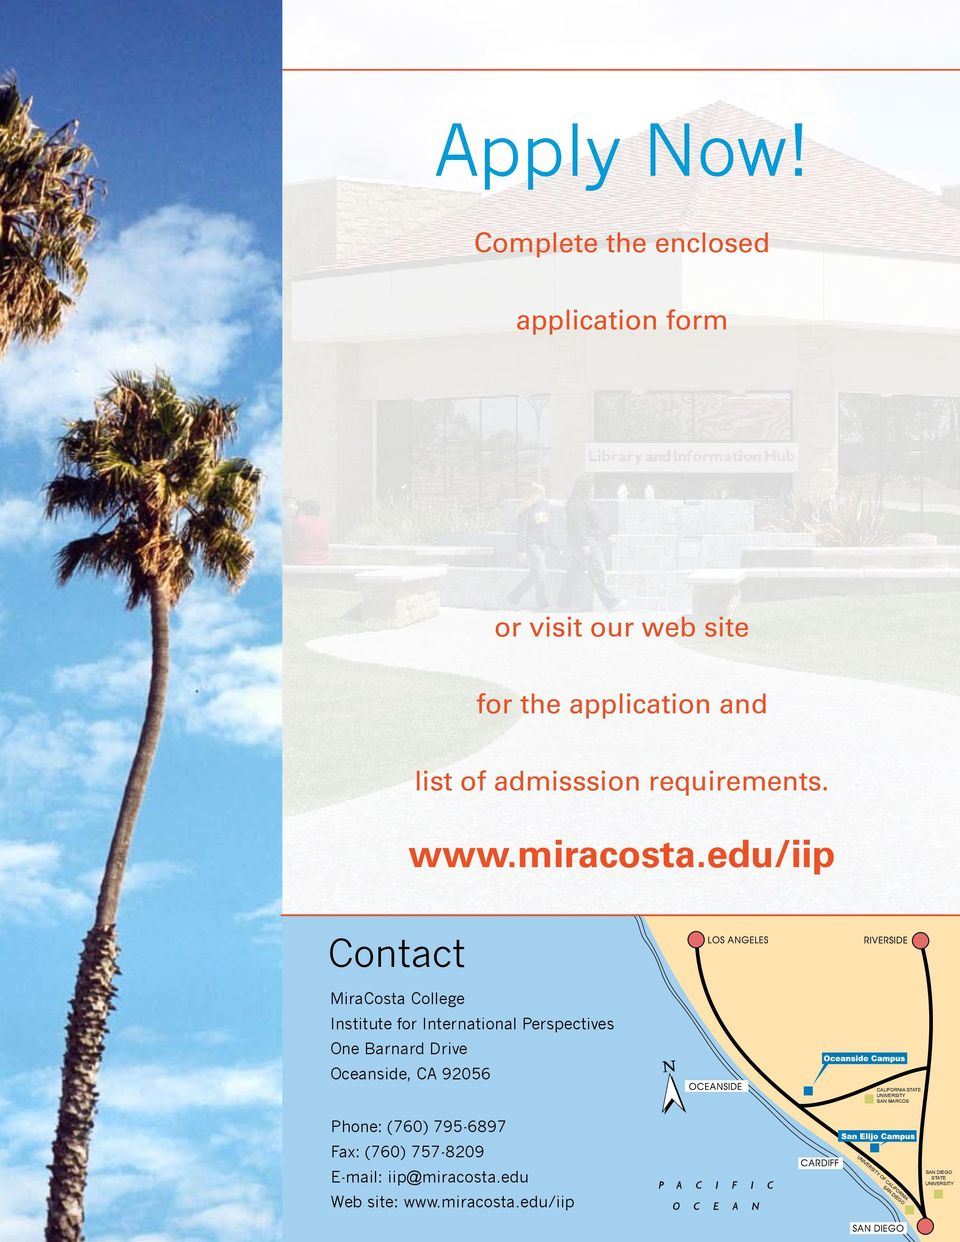 requirements. www.miracosta.